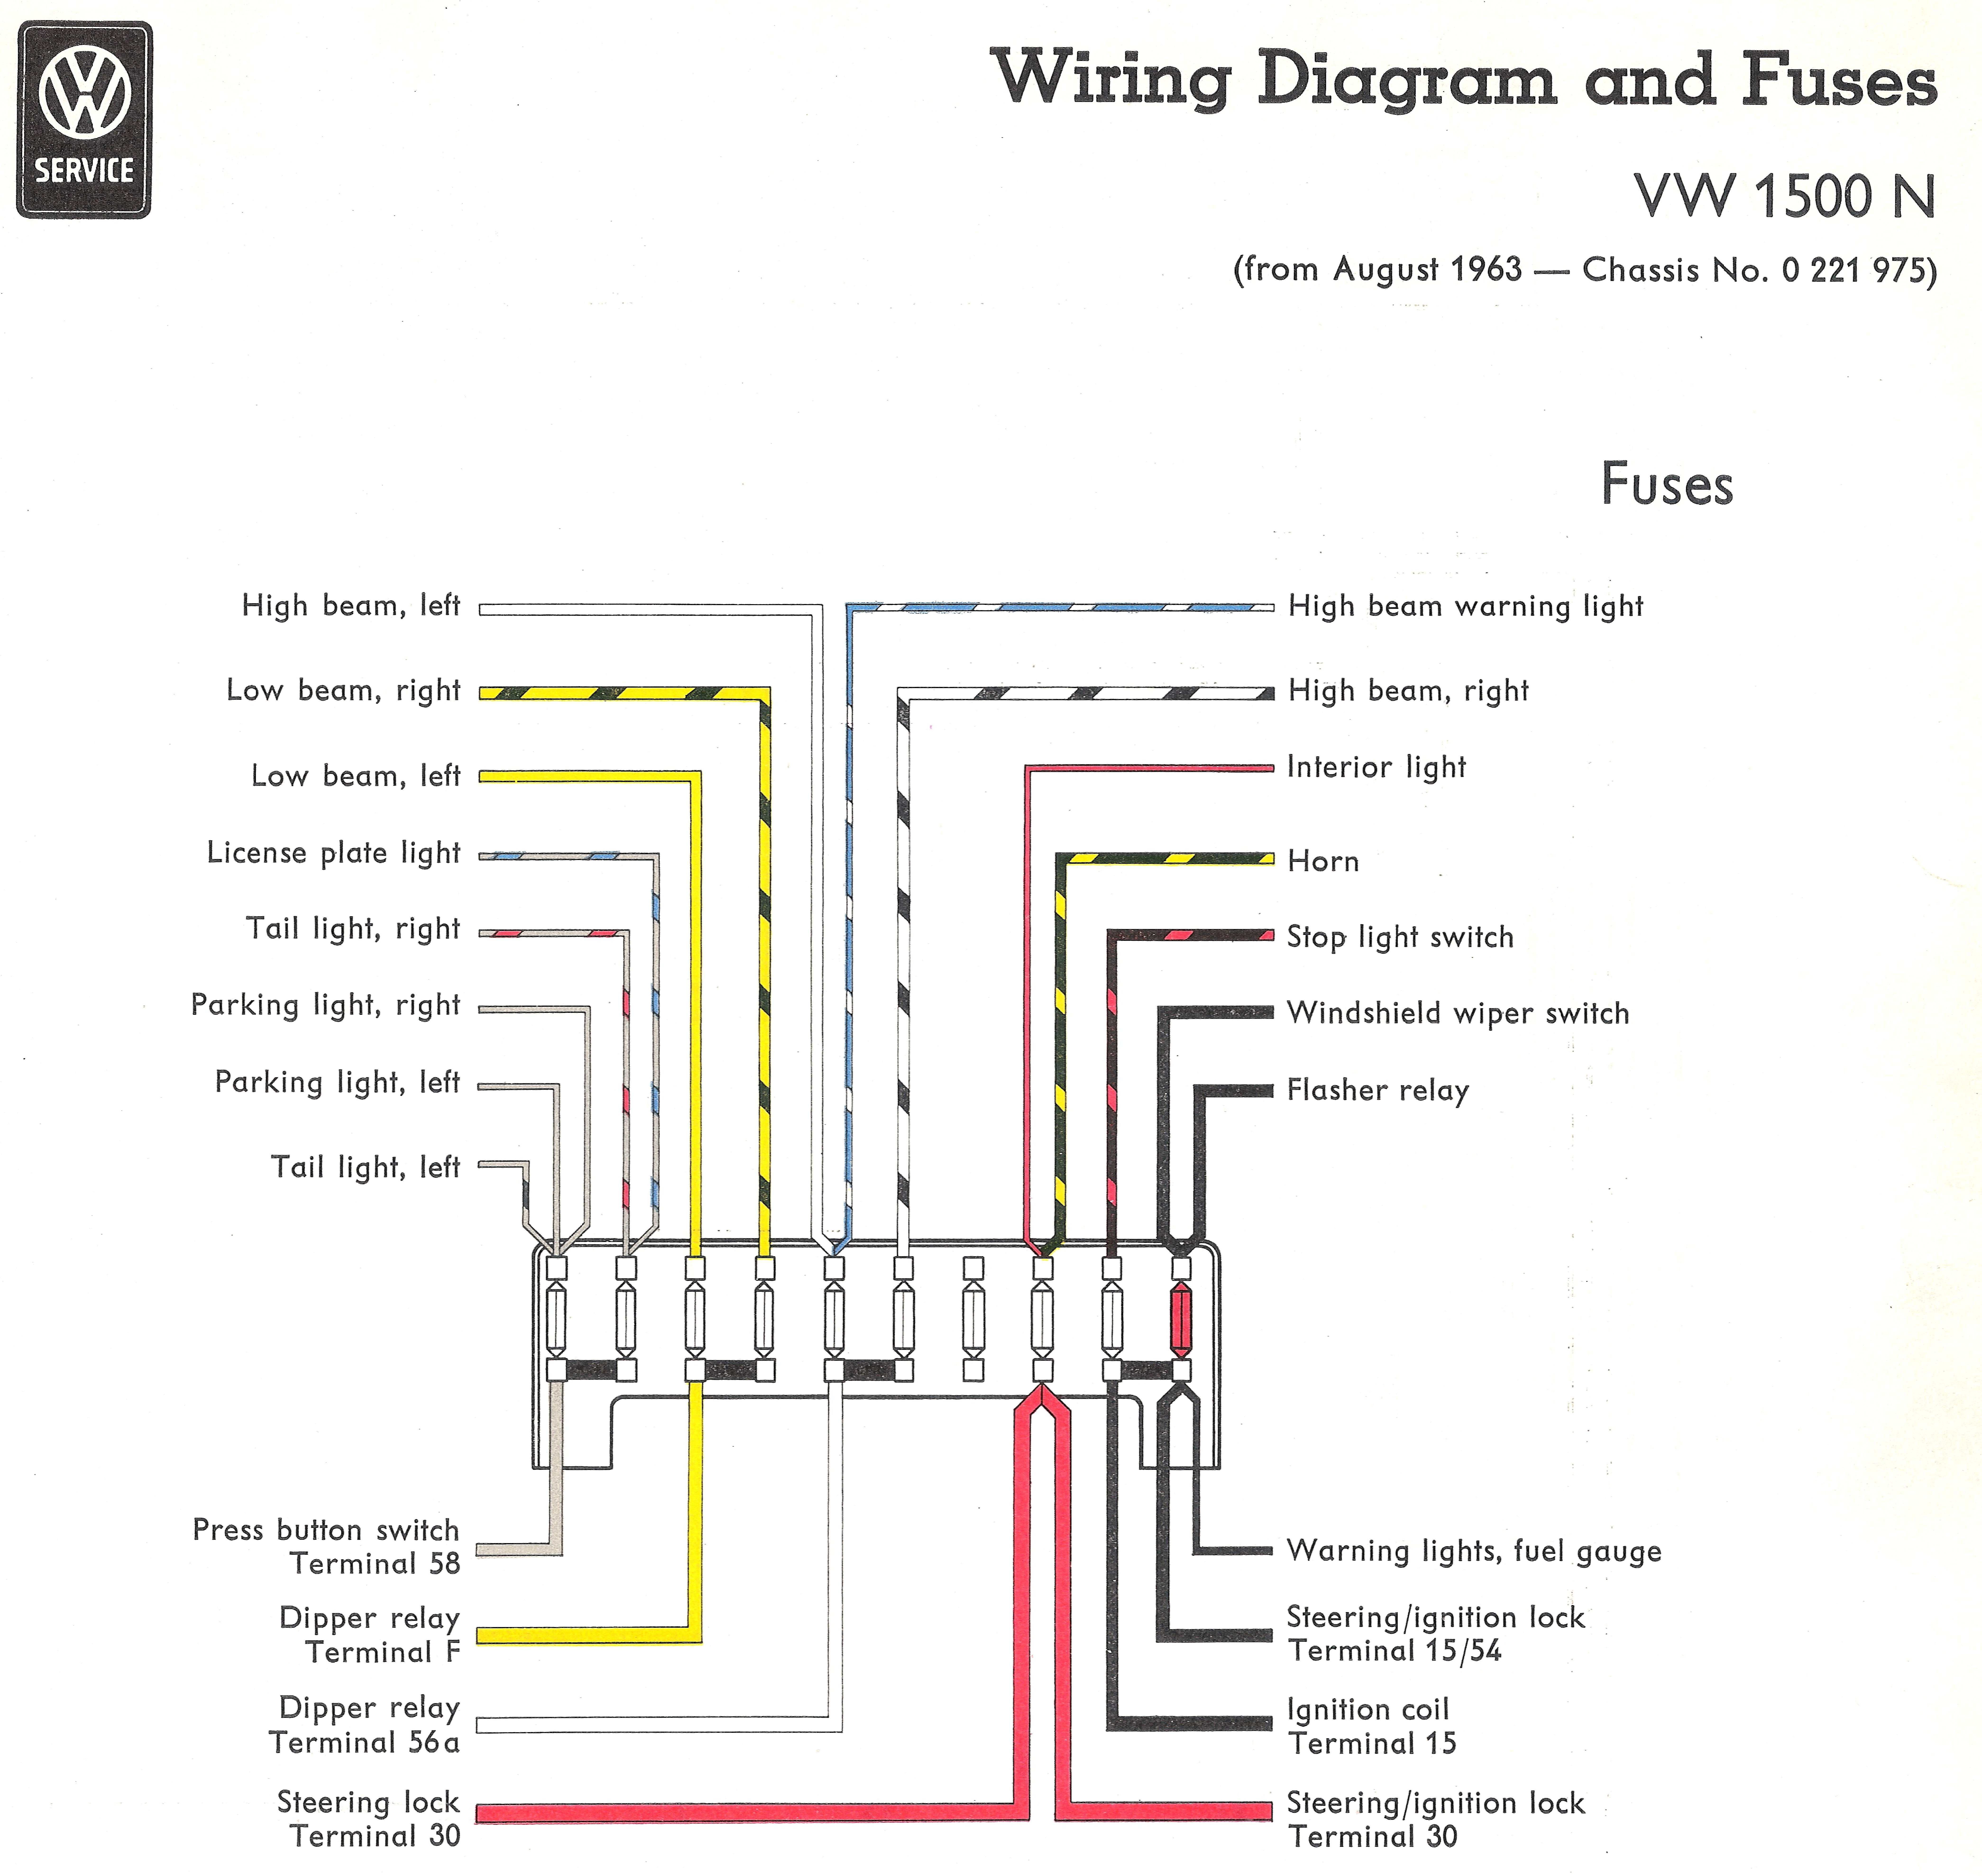 type3_1500n fuse 1200dpi electric cutout wiring diagram electrical circuit wiring diagram  at edmiracle.co